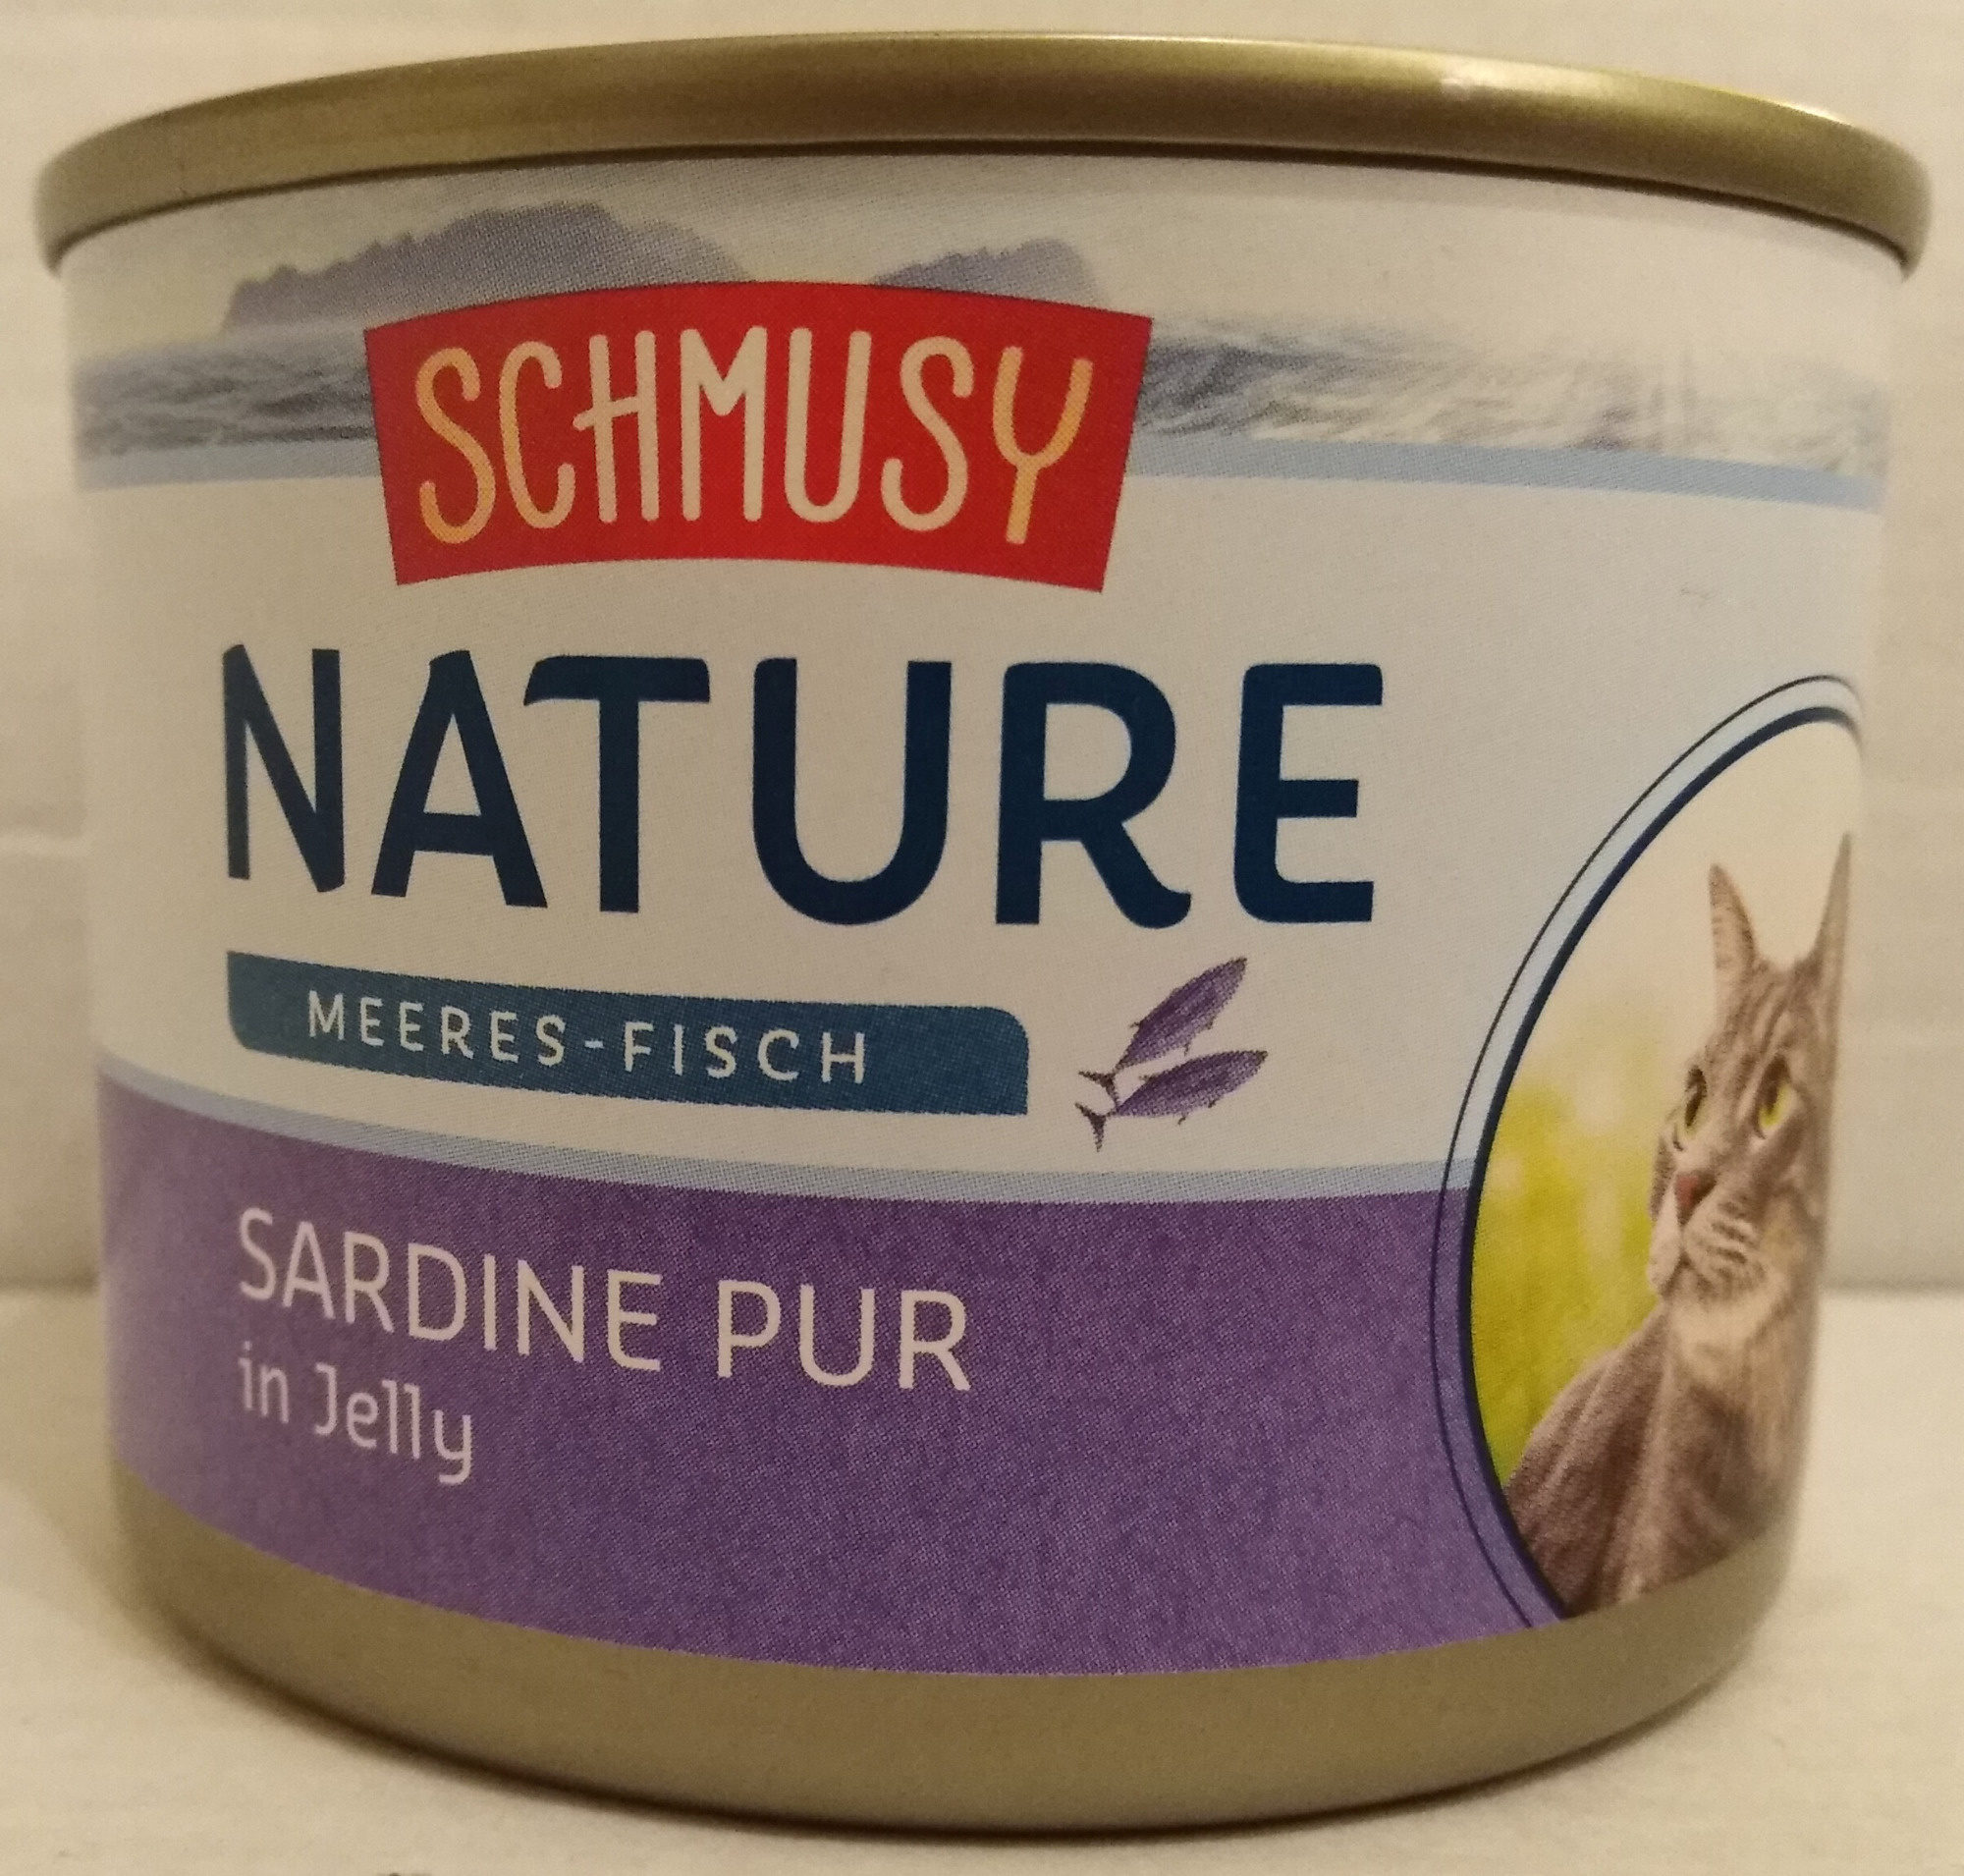 Meeres-Fisch Sardine Pur in Jelly - Product